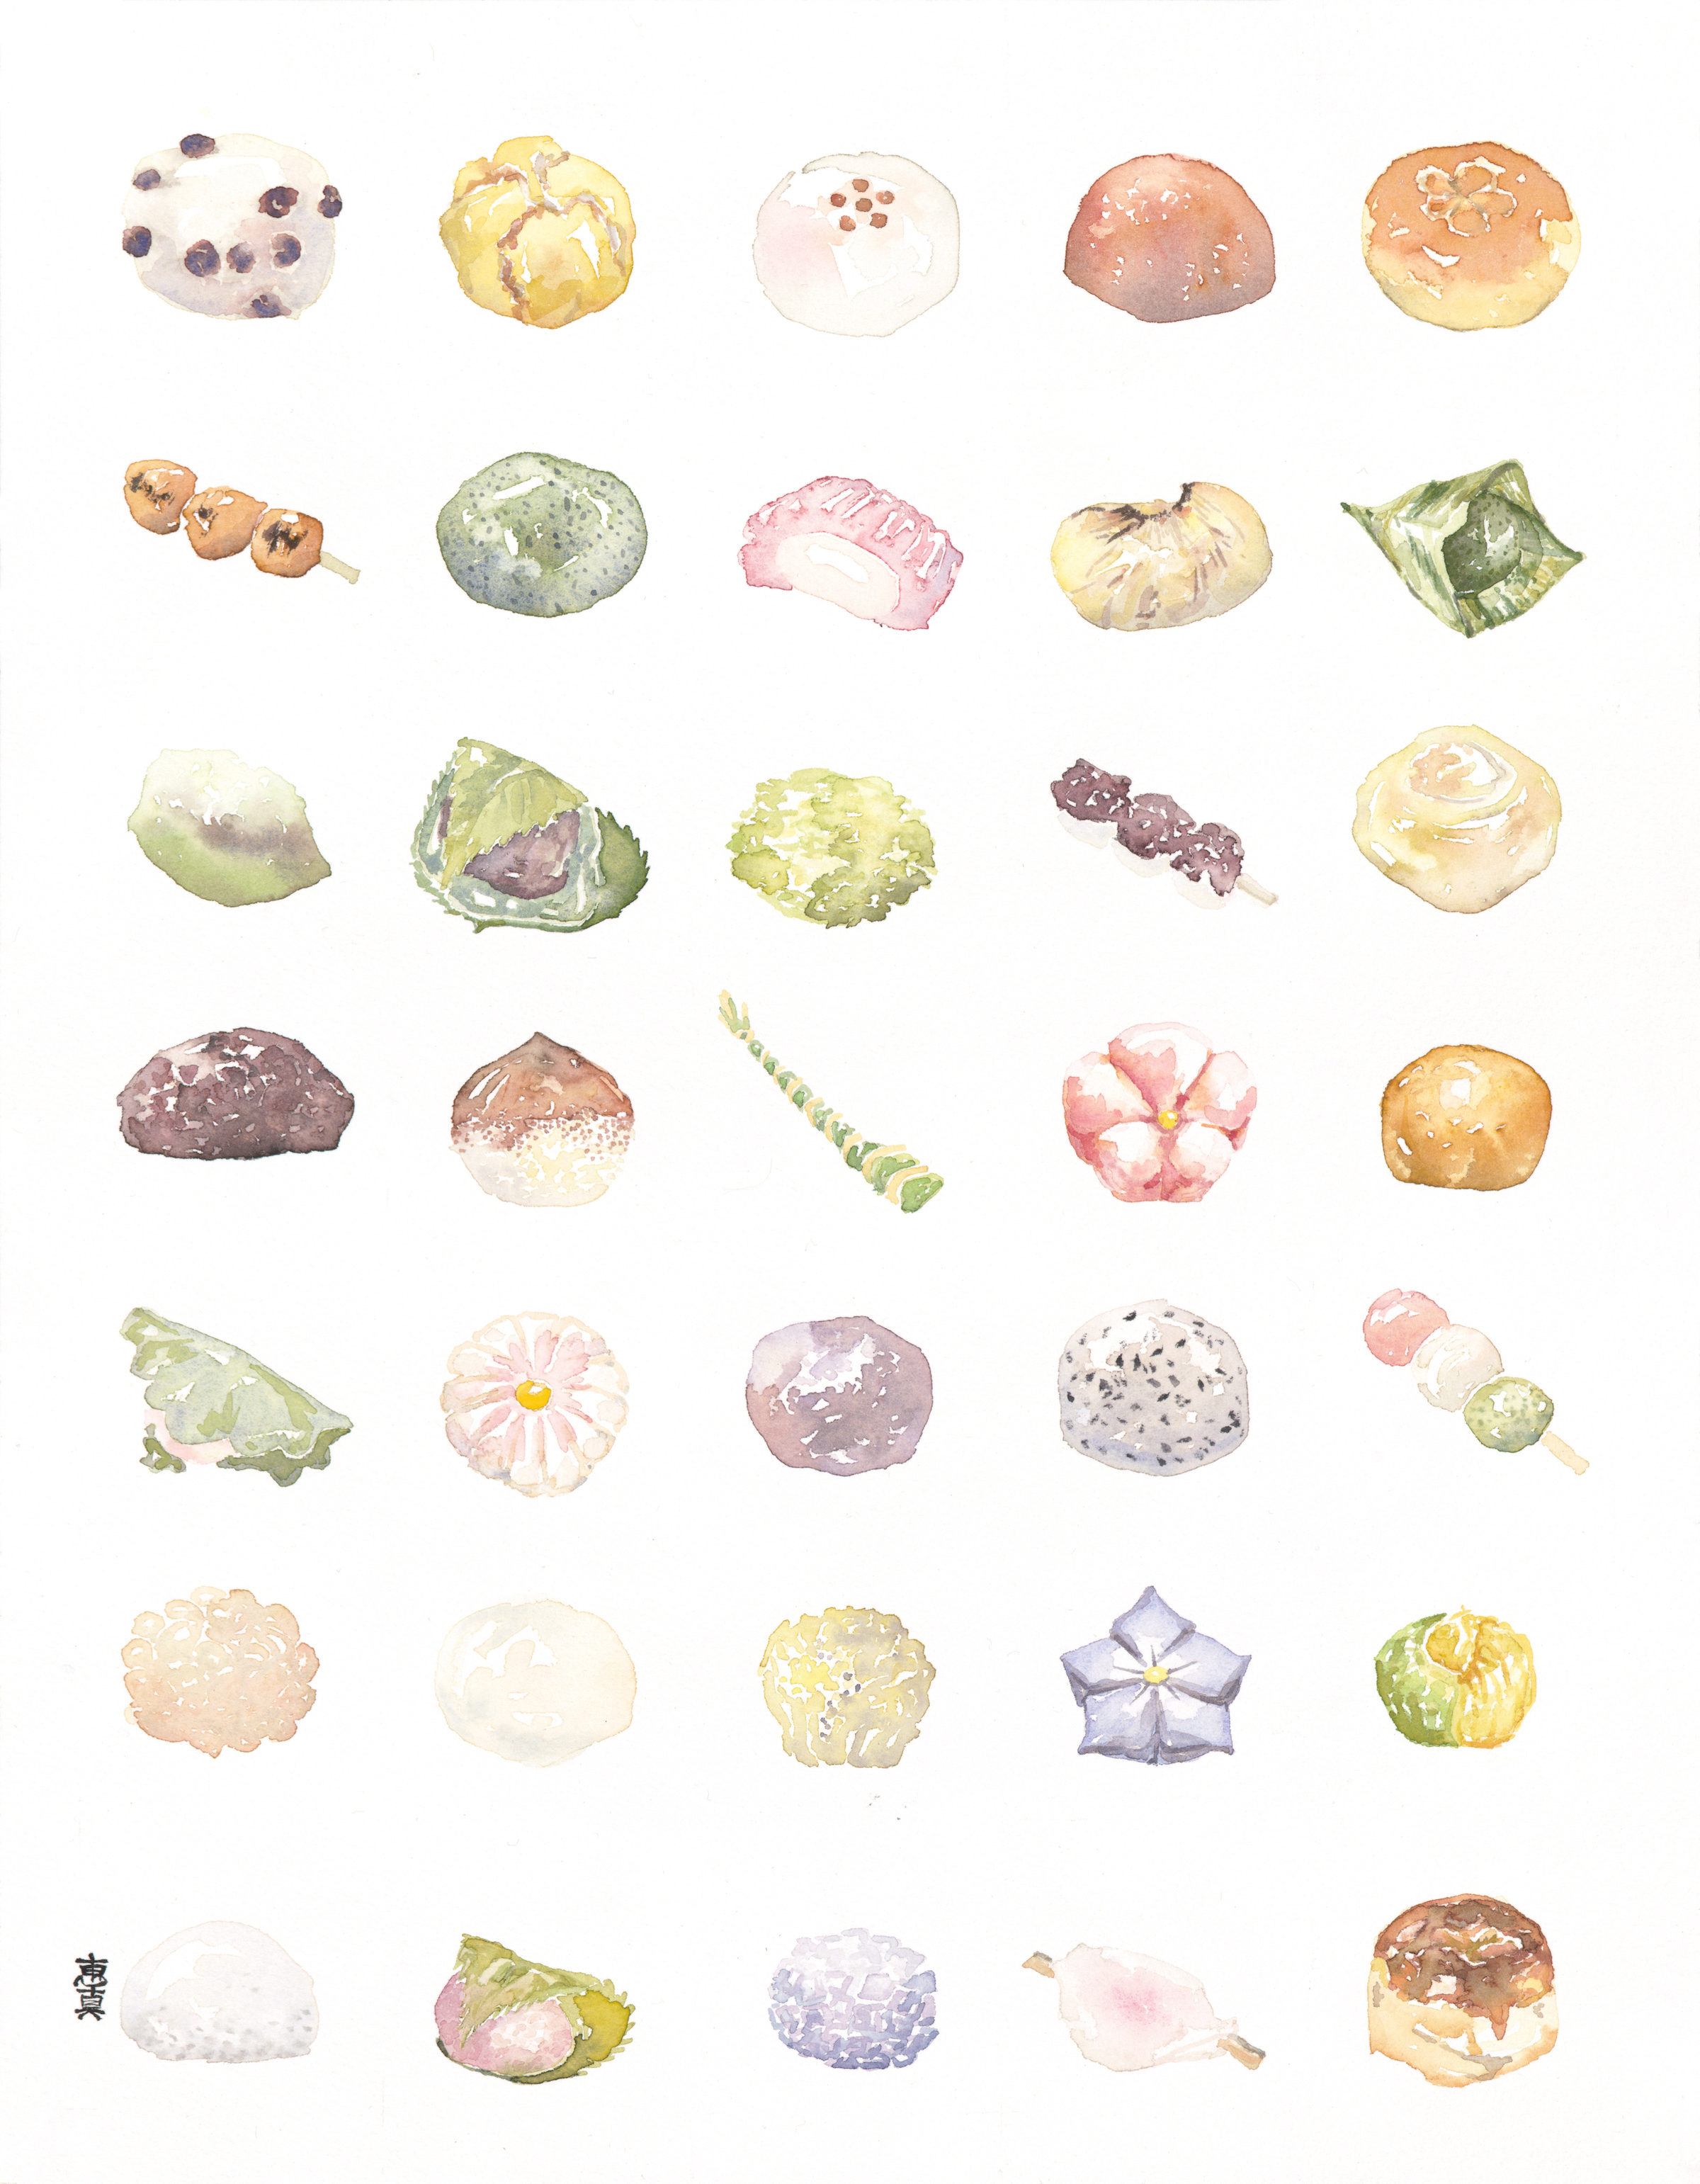 "Wagashi [11x14"" - $80]  giclee print of an original 11x14"" watercolor painting of 35 types of traditional Japanese confections."